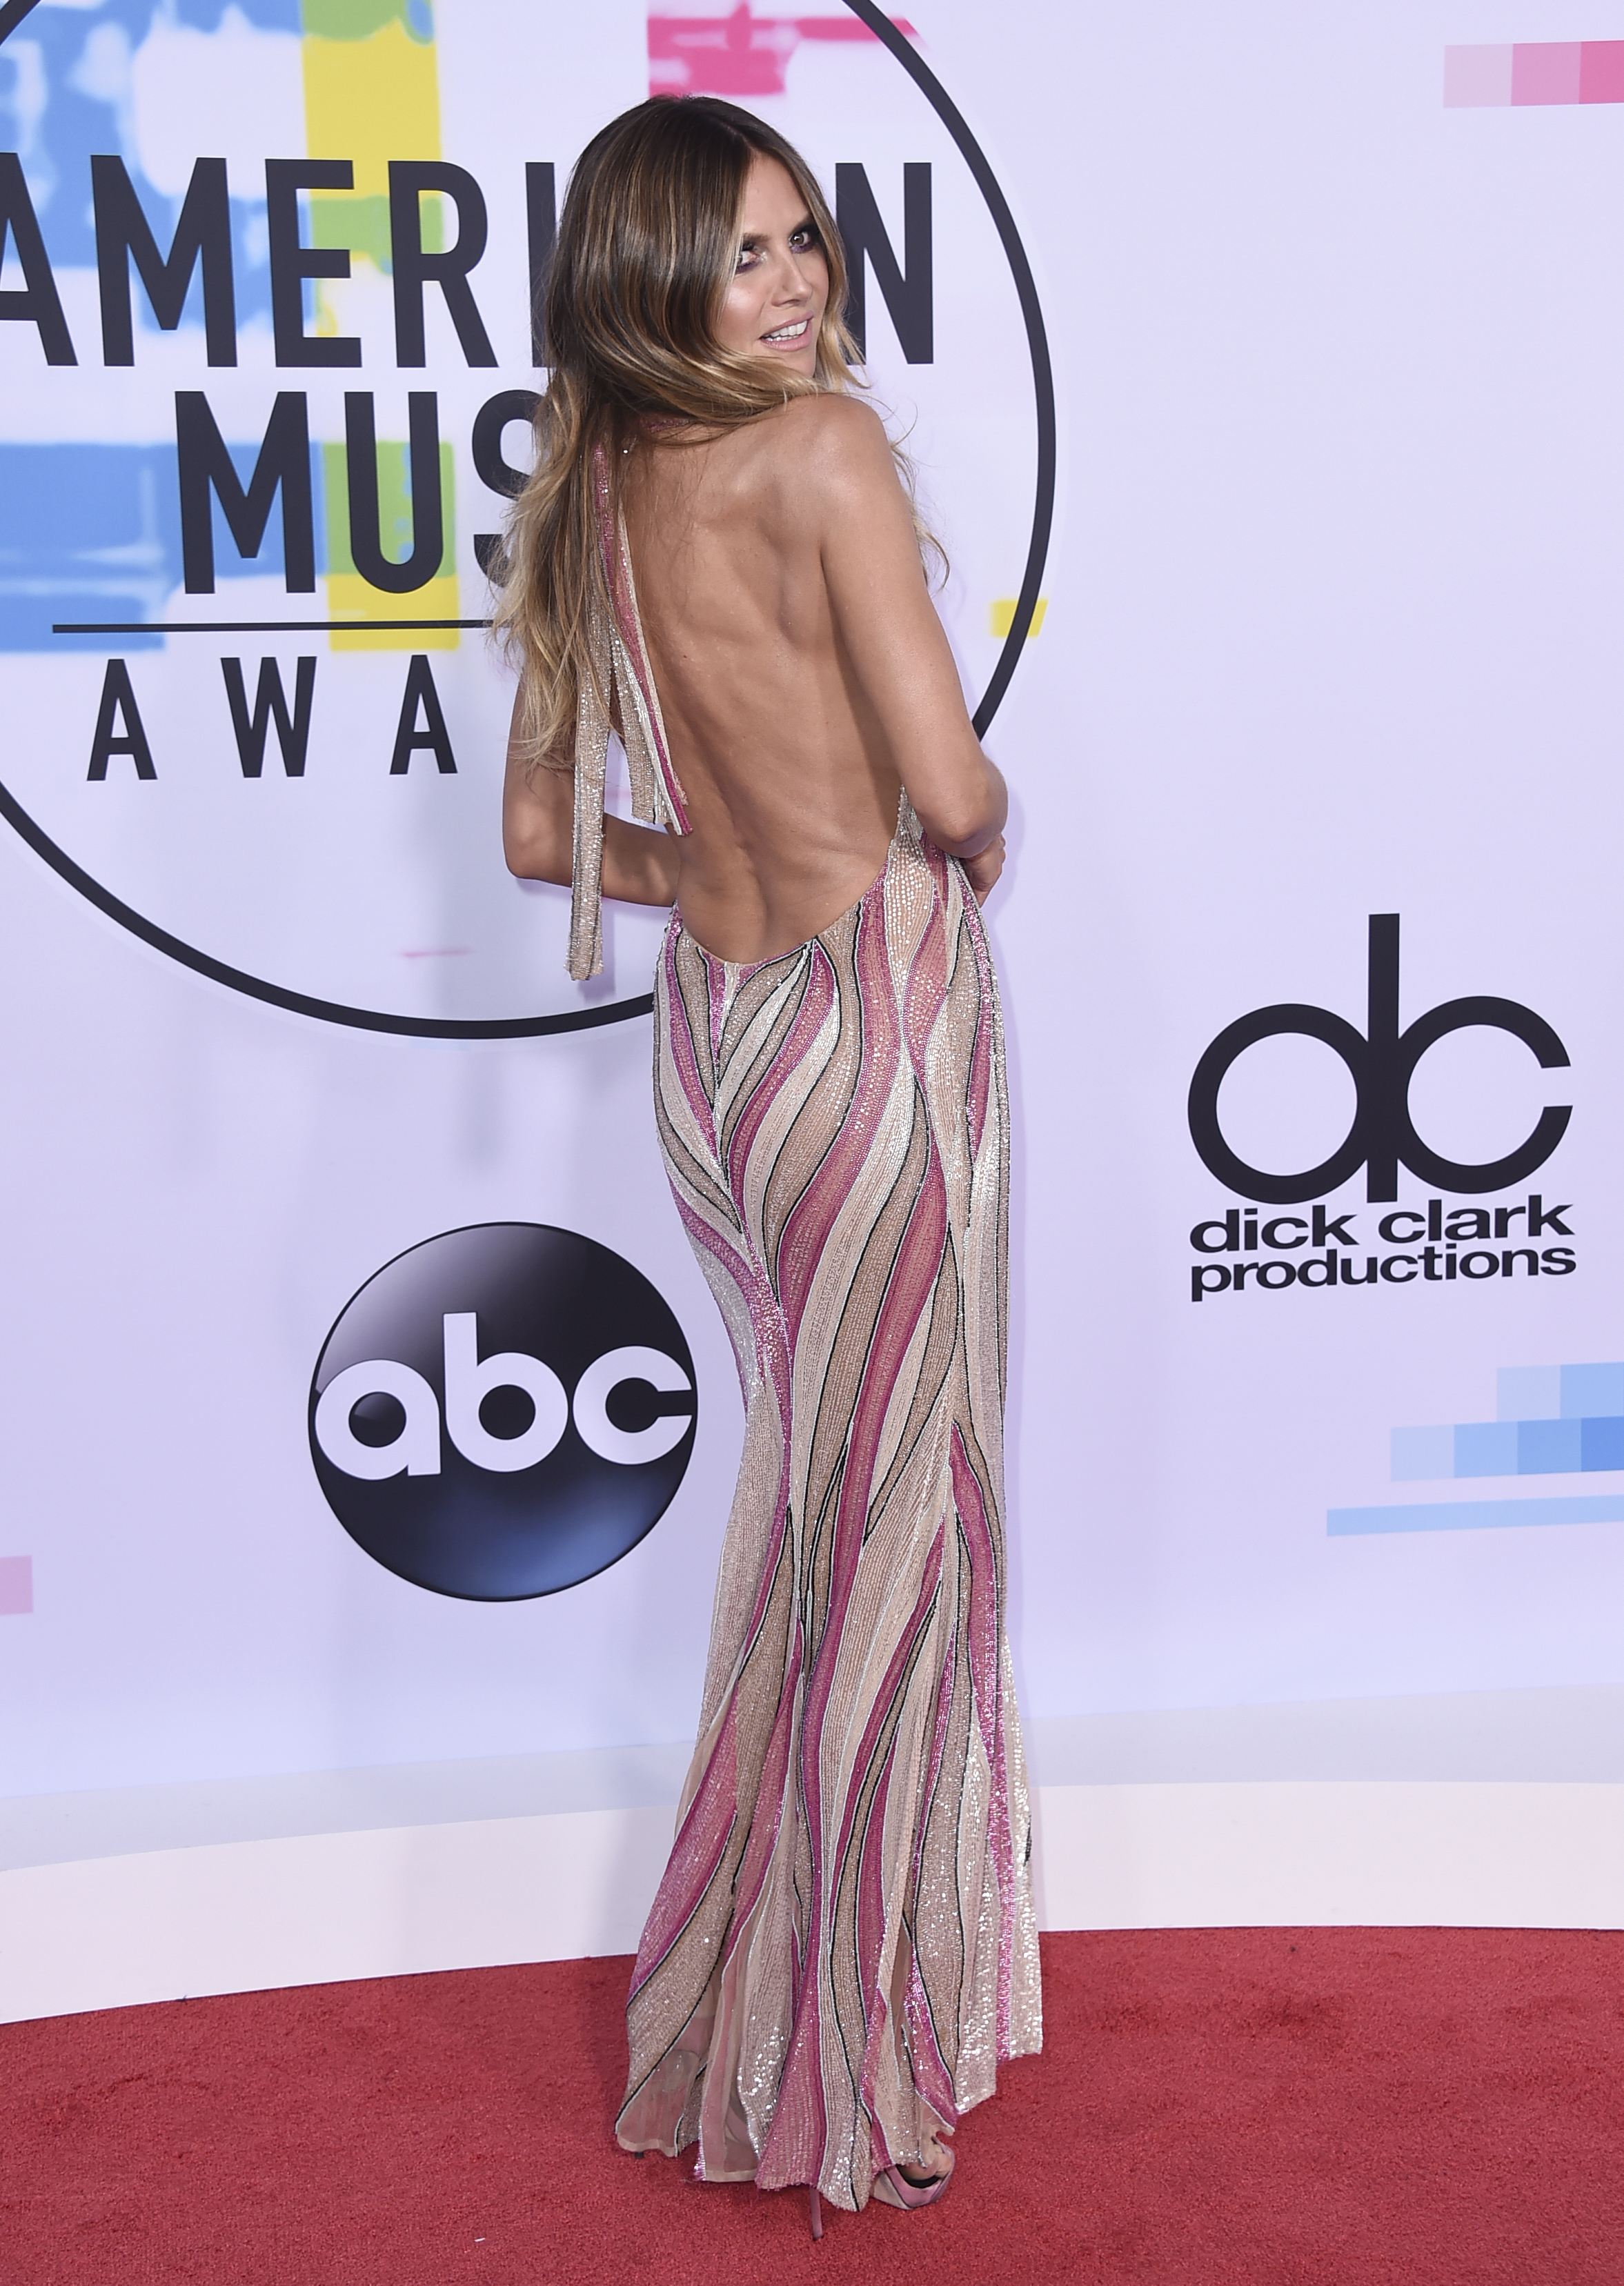 <div class='meta'><div class='origin-logo' data-origin='none'></div><span class='caption-text' data-credit='Jordan Strauss/Invision/AP'>Heidi Klum arrives at the American Music Awards at the Microsoft Theater on Sunday, Nov. 19, 2017, in Los Angeles.</span></div>